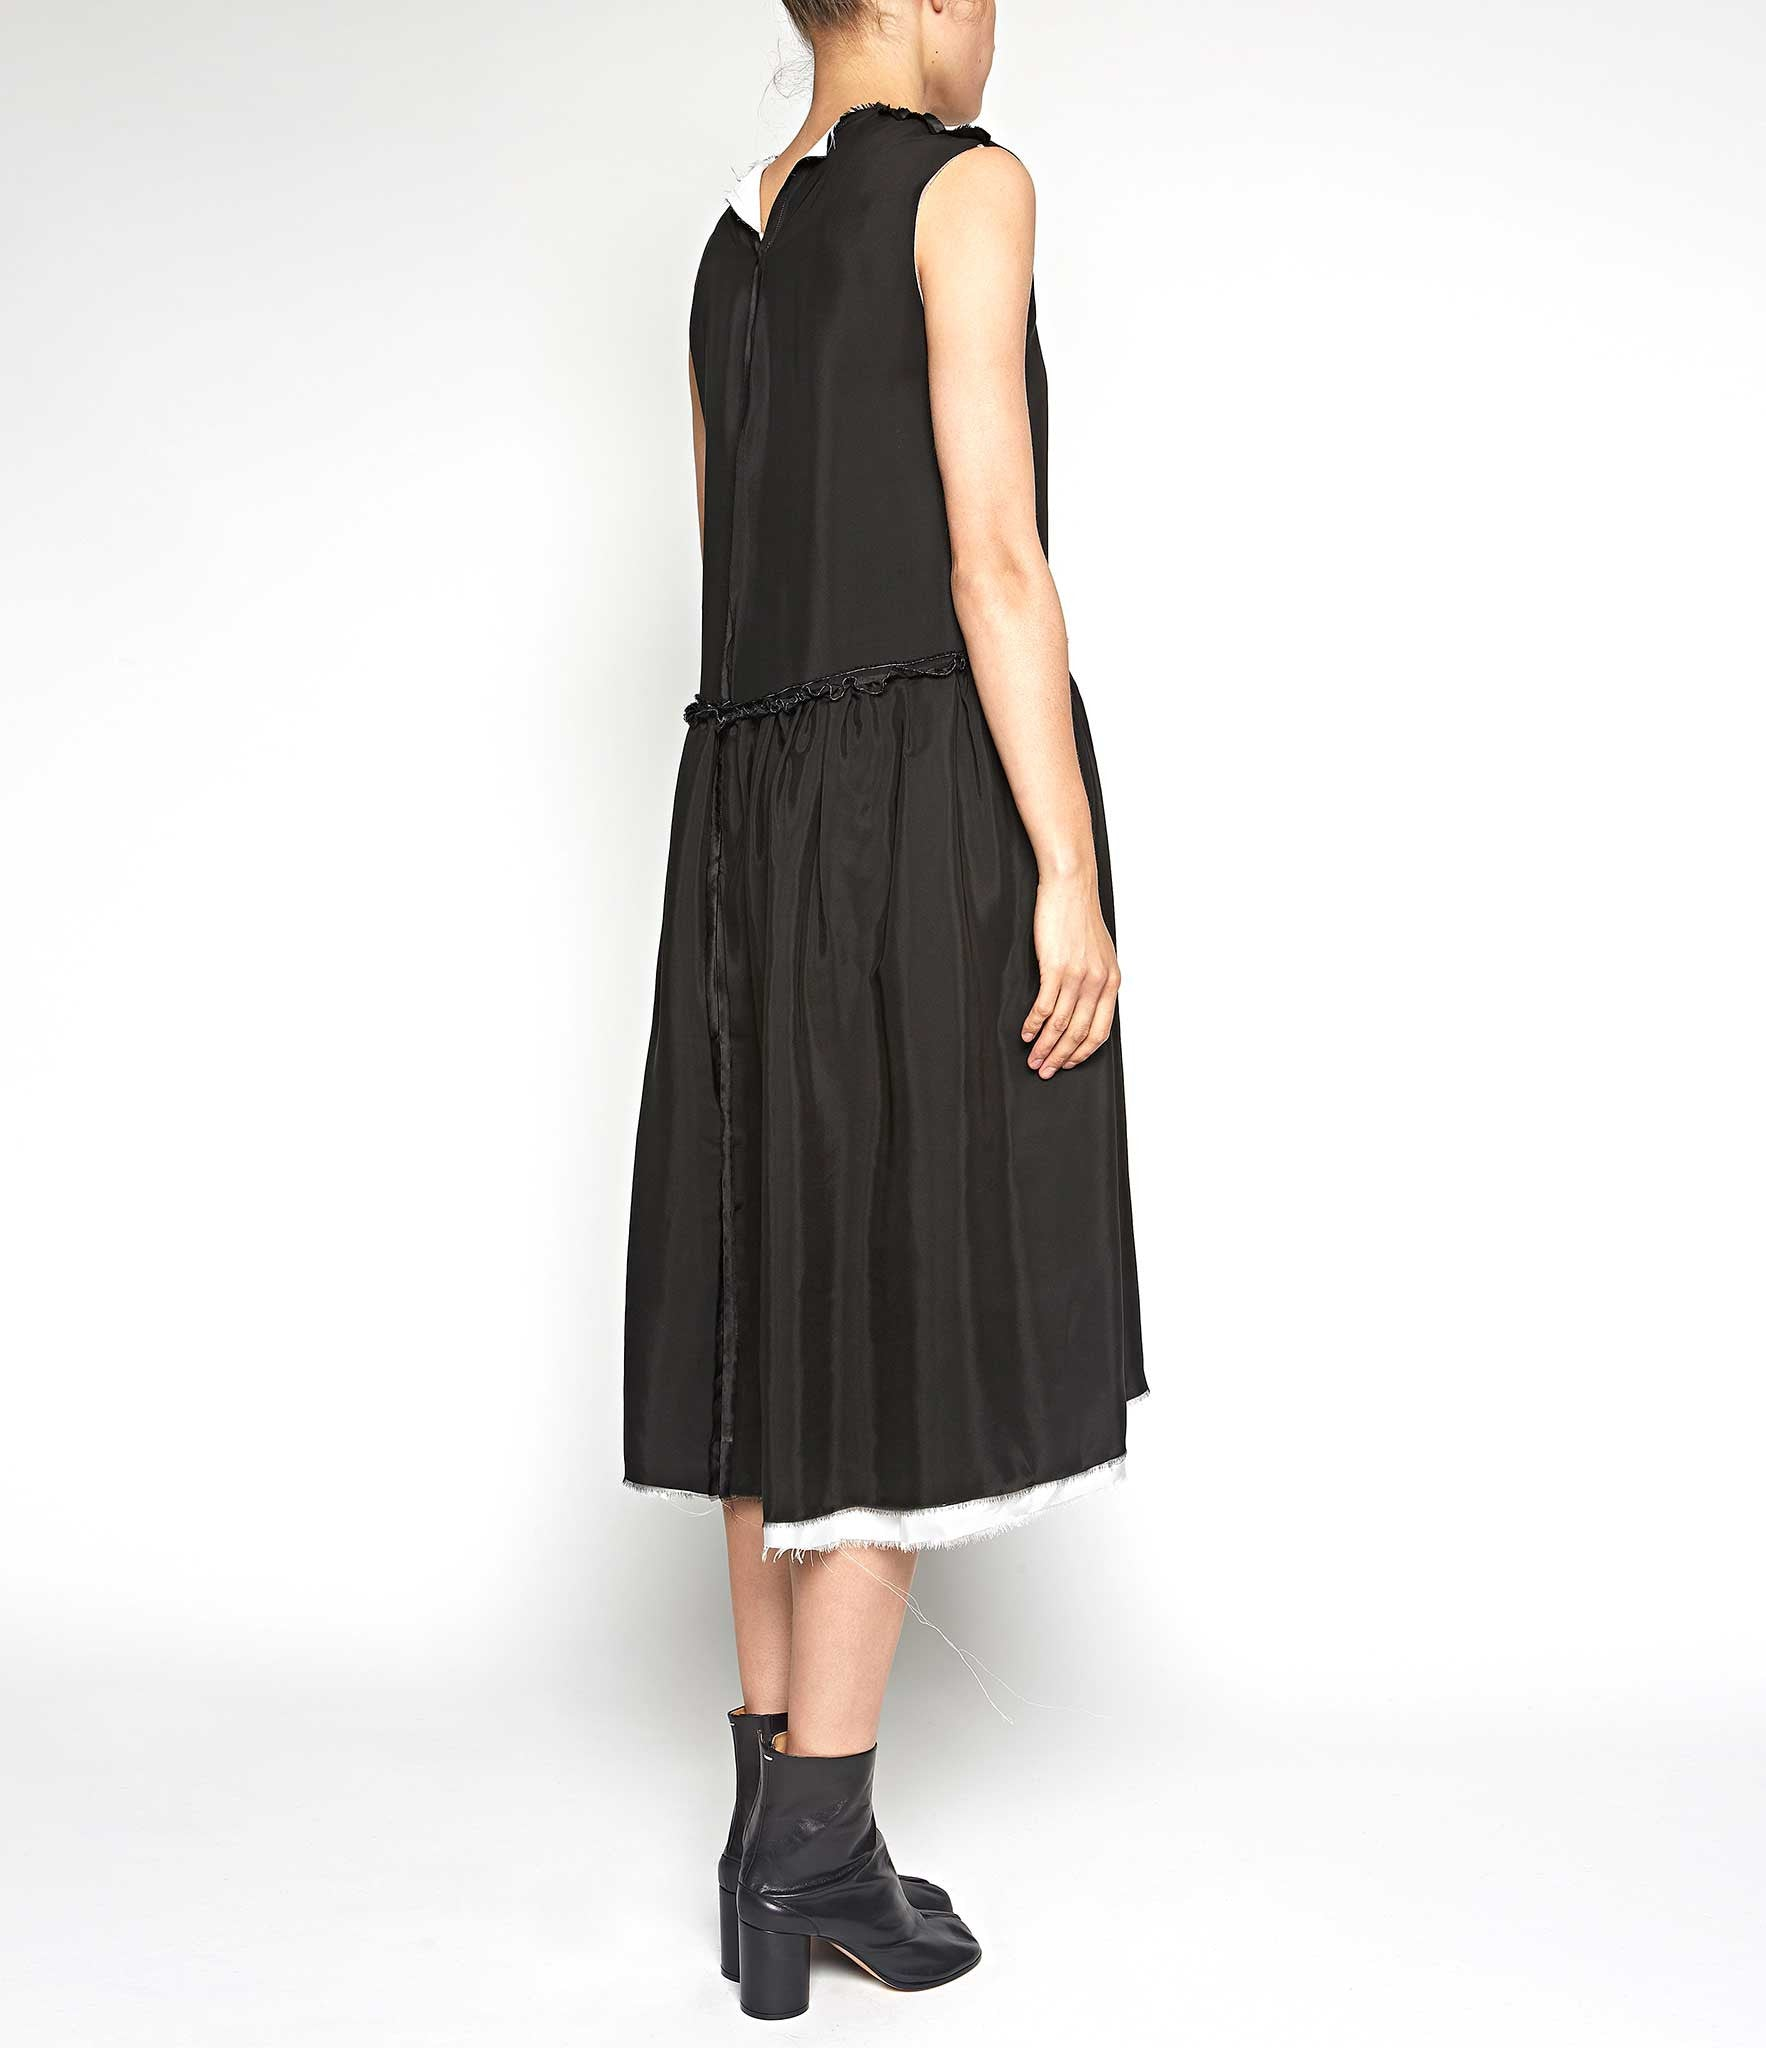 Maria Turri Black Layered Silk Dress